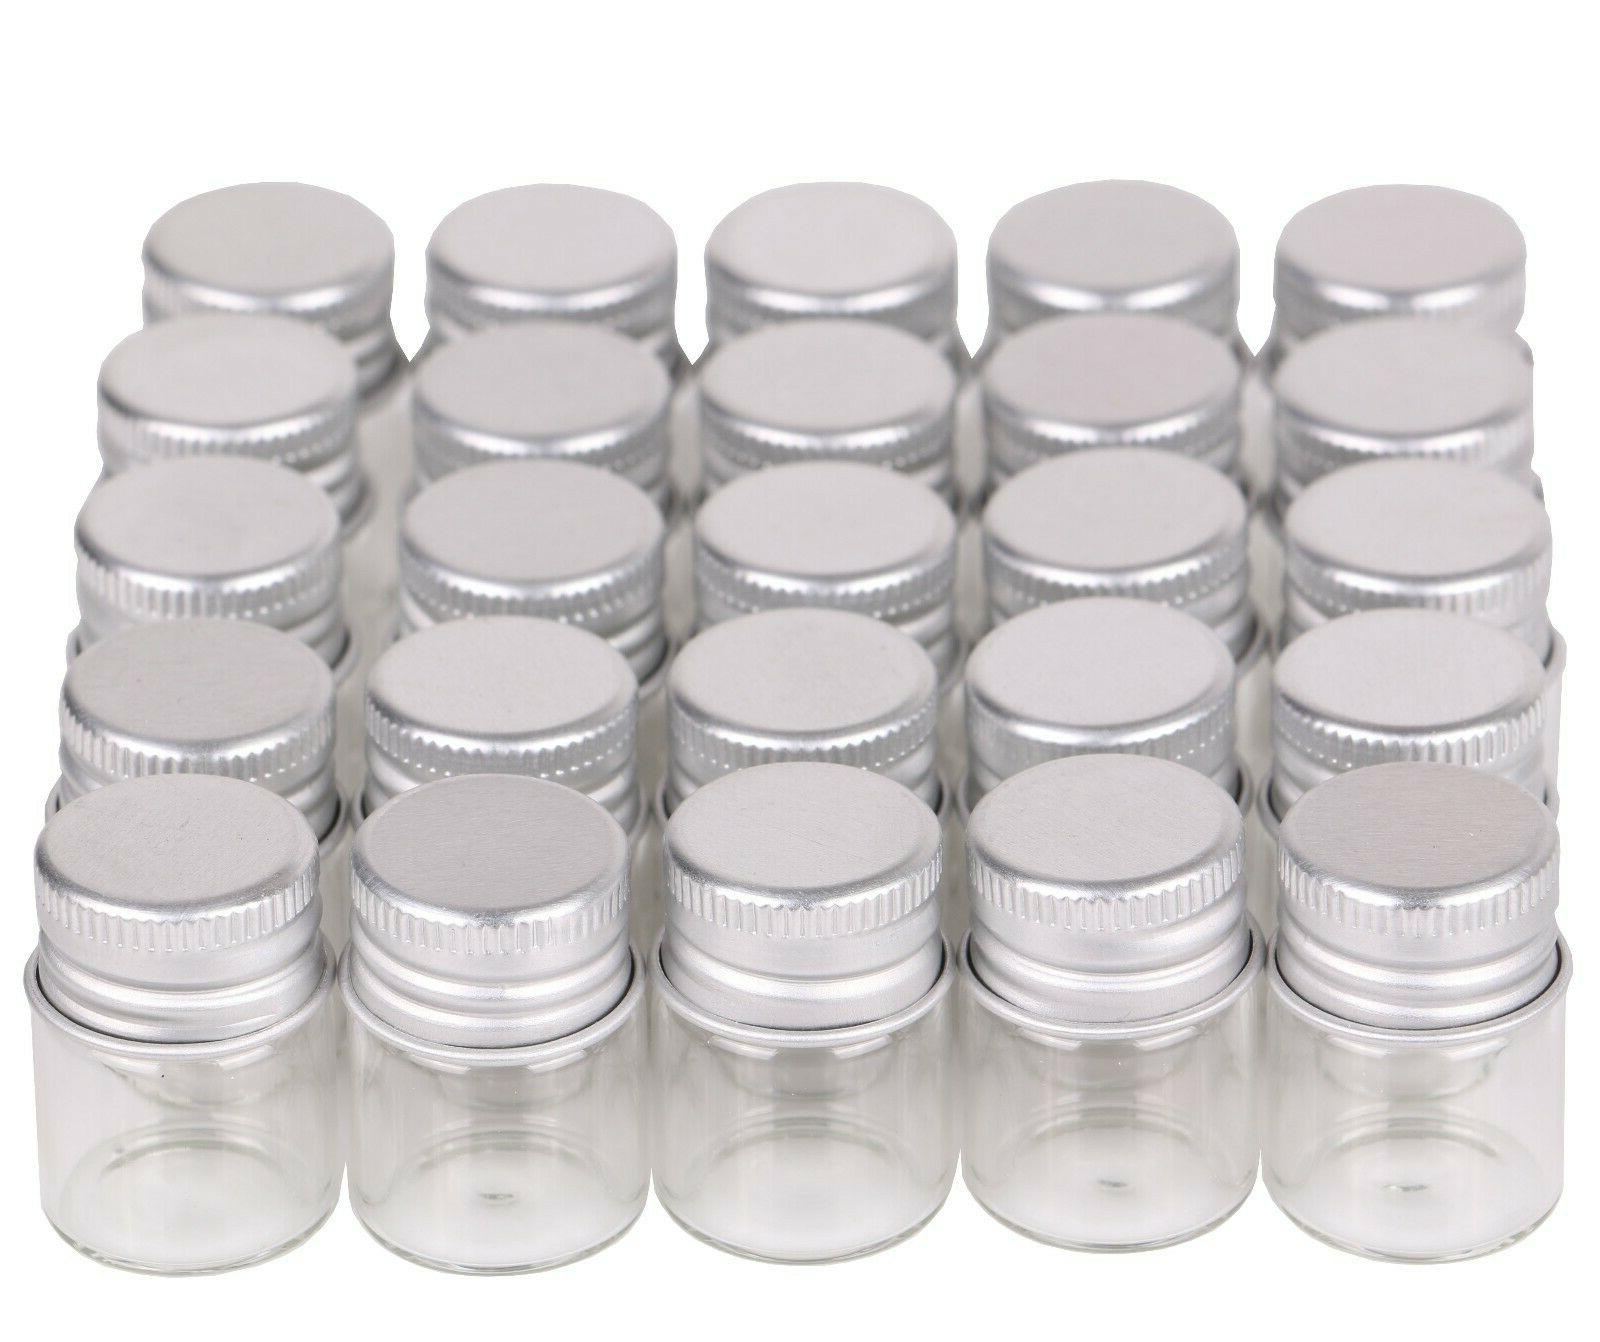 100pcs 5ml Small Glass Bottles Jars with Screw Lids Top